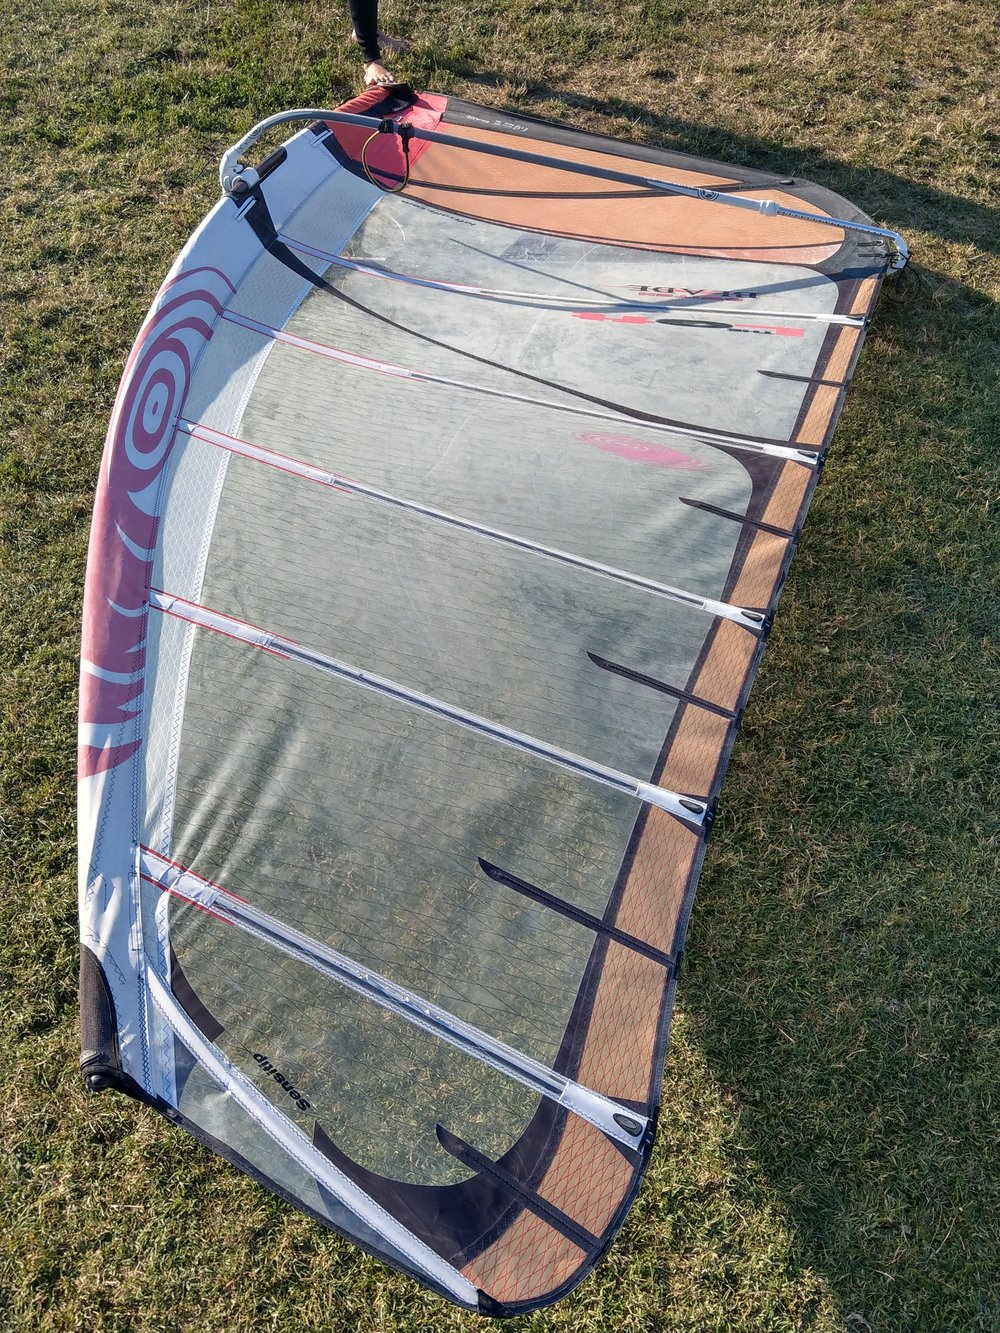 Loftsails switchblade 7.3